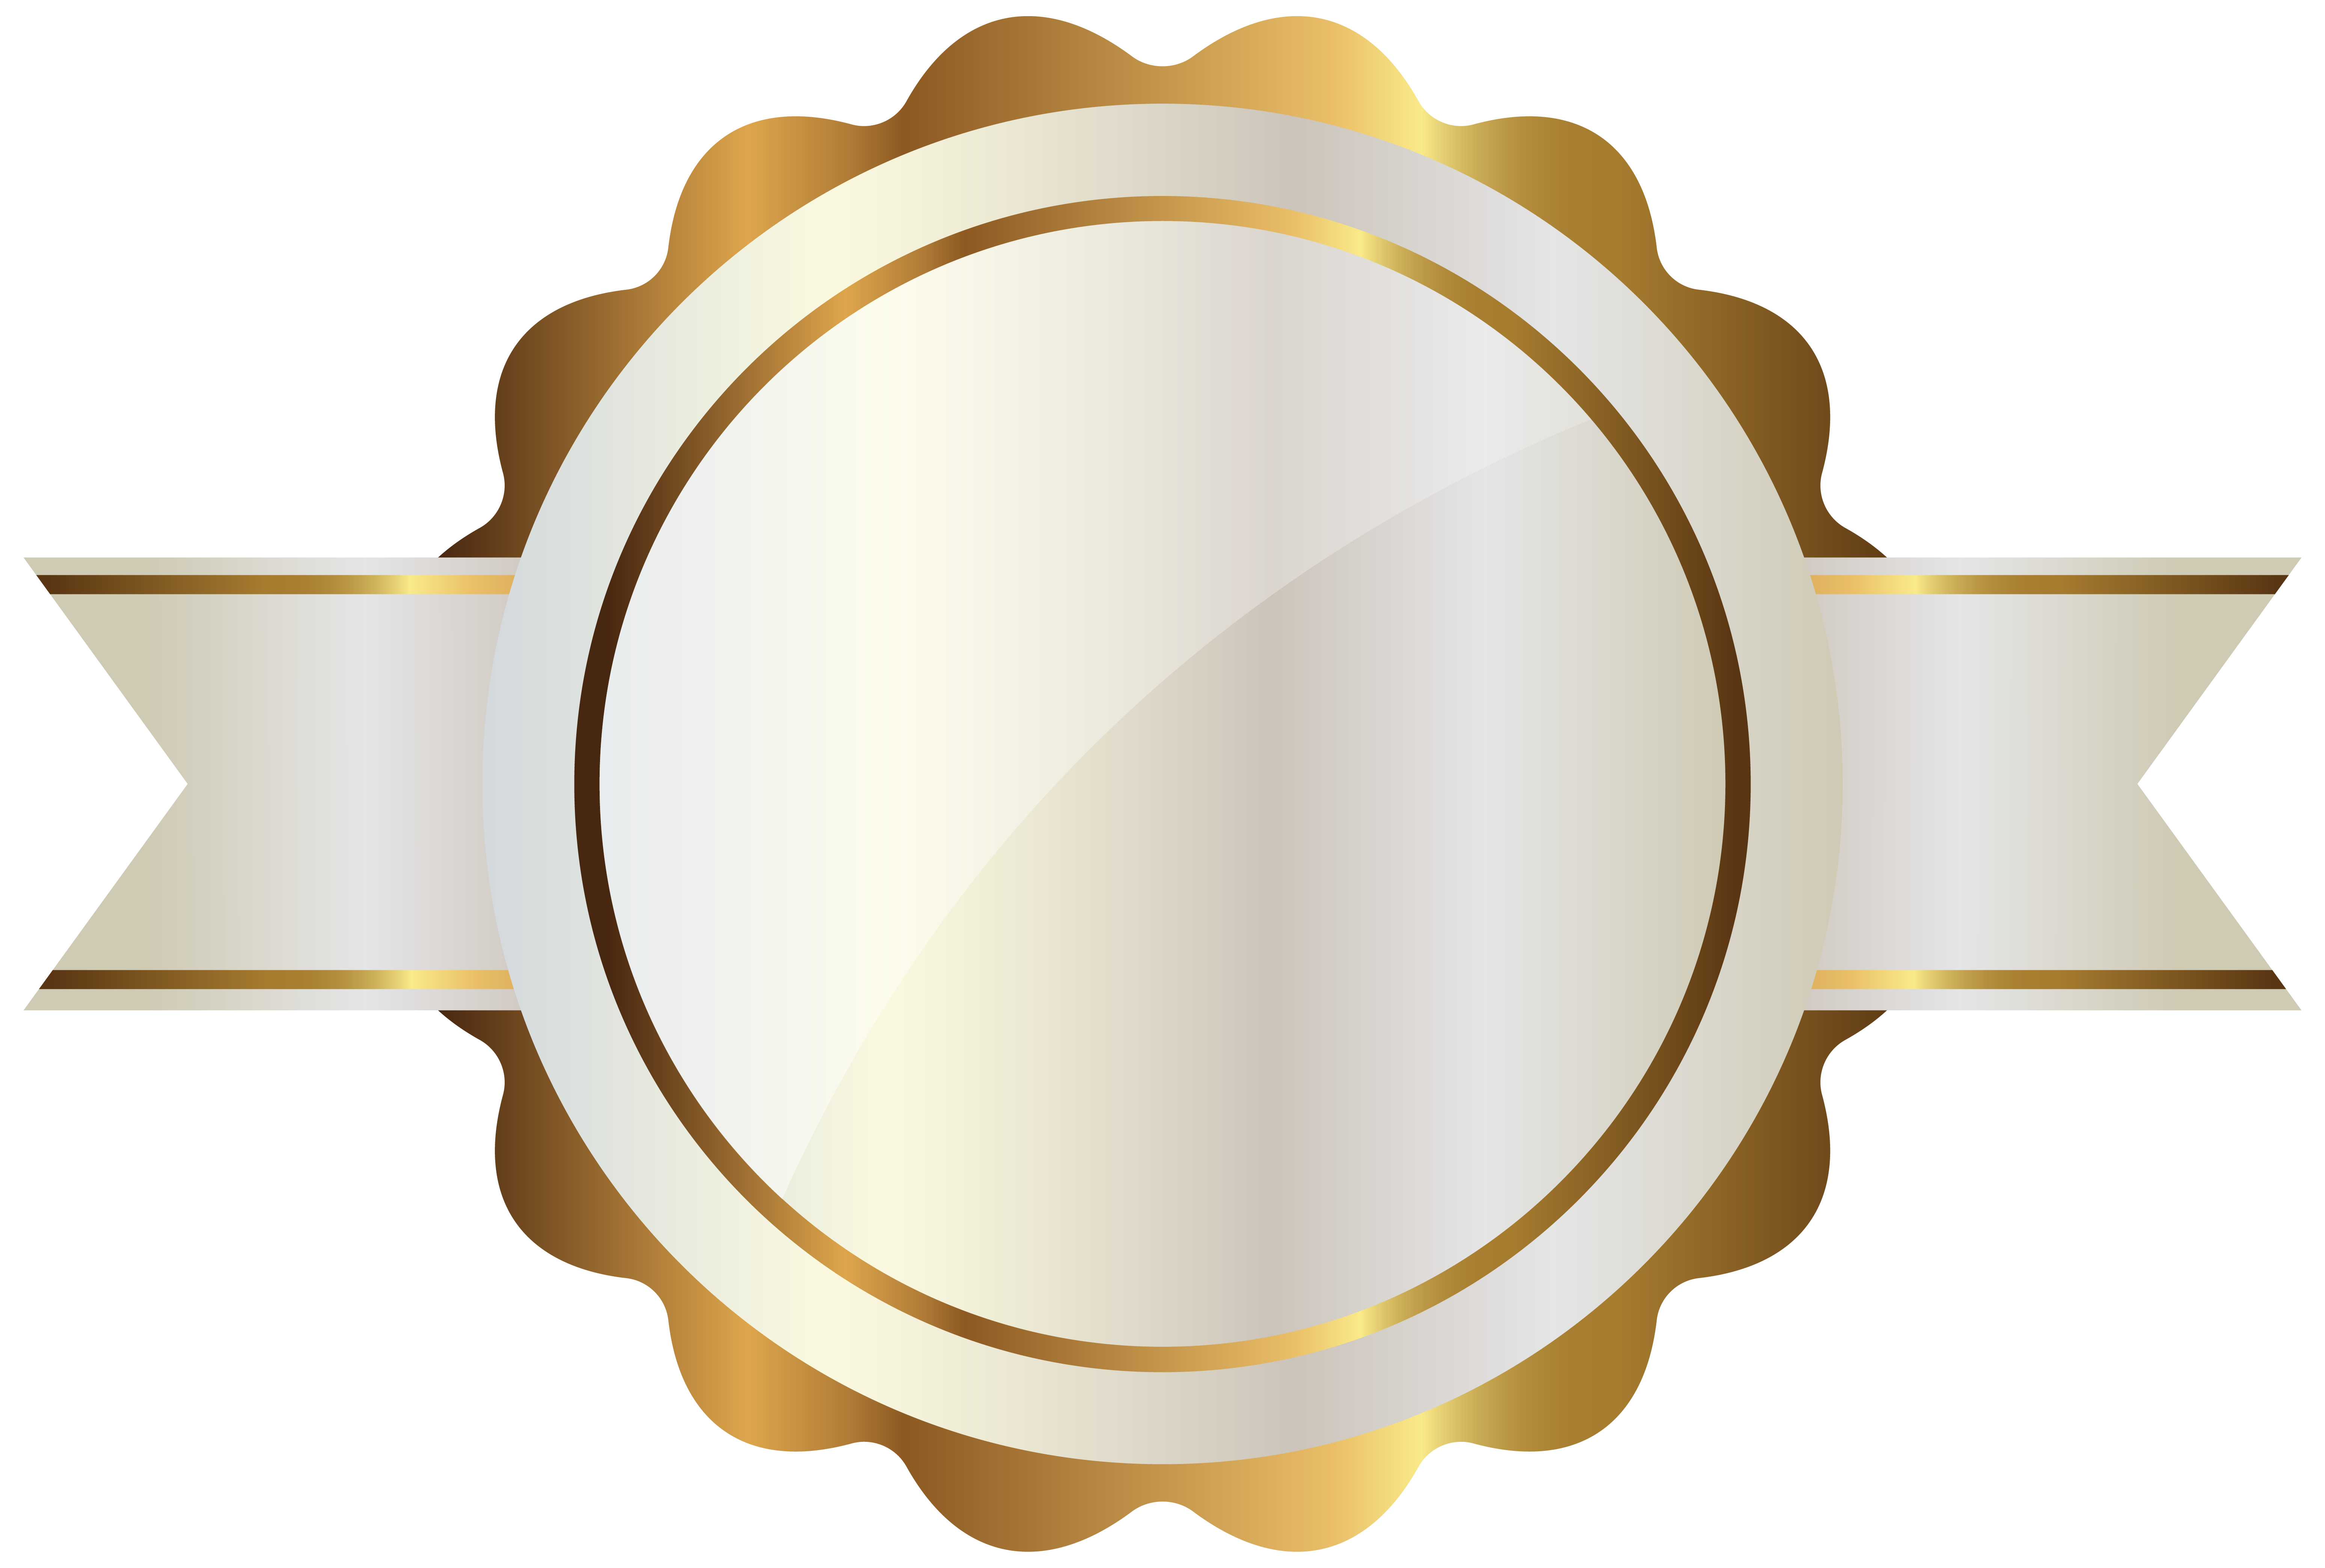 png transparent download Clipart label. White with gold png